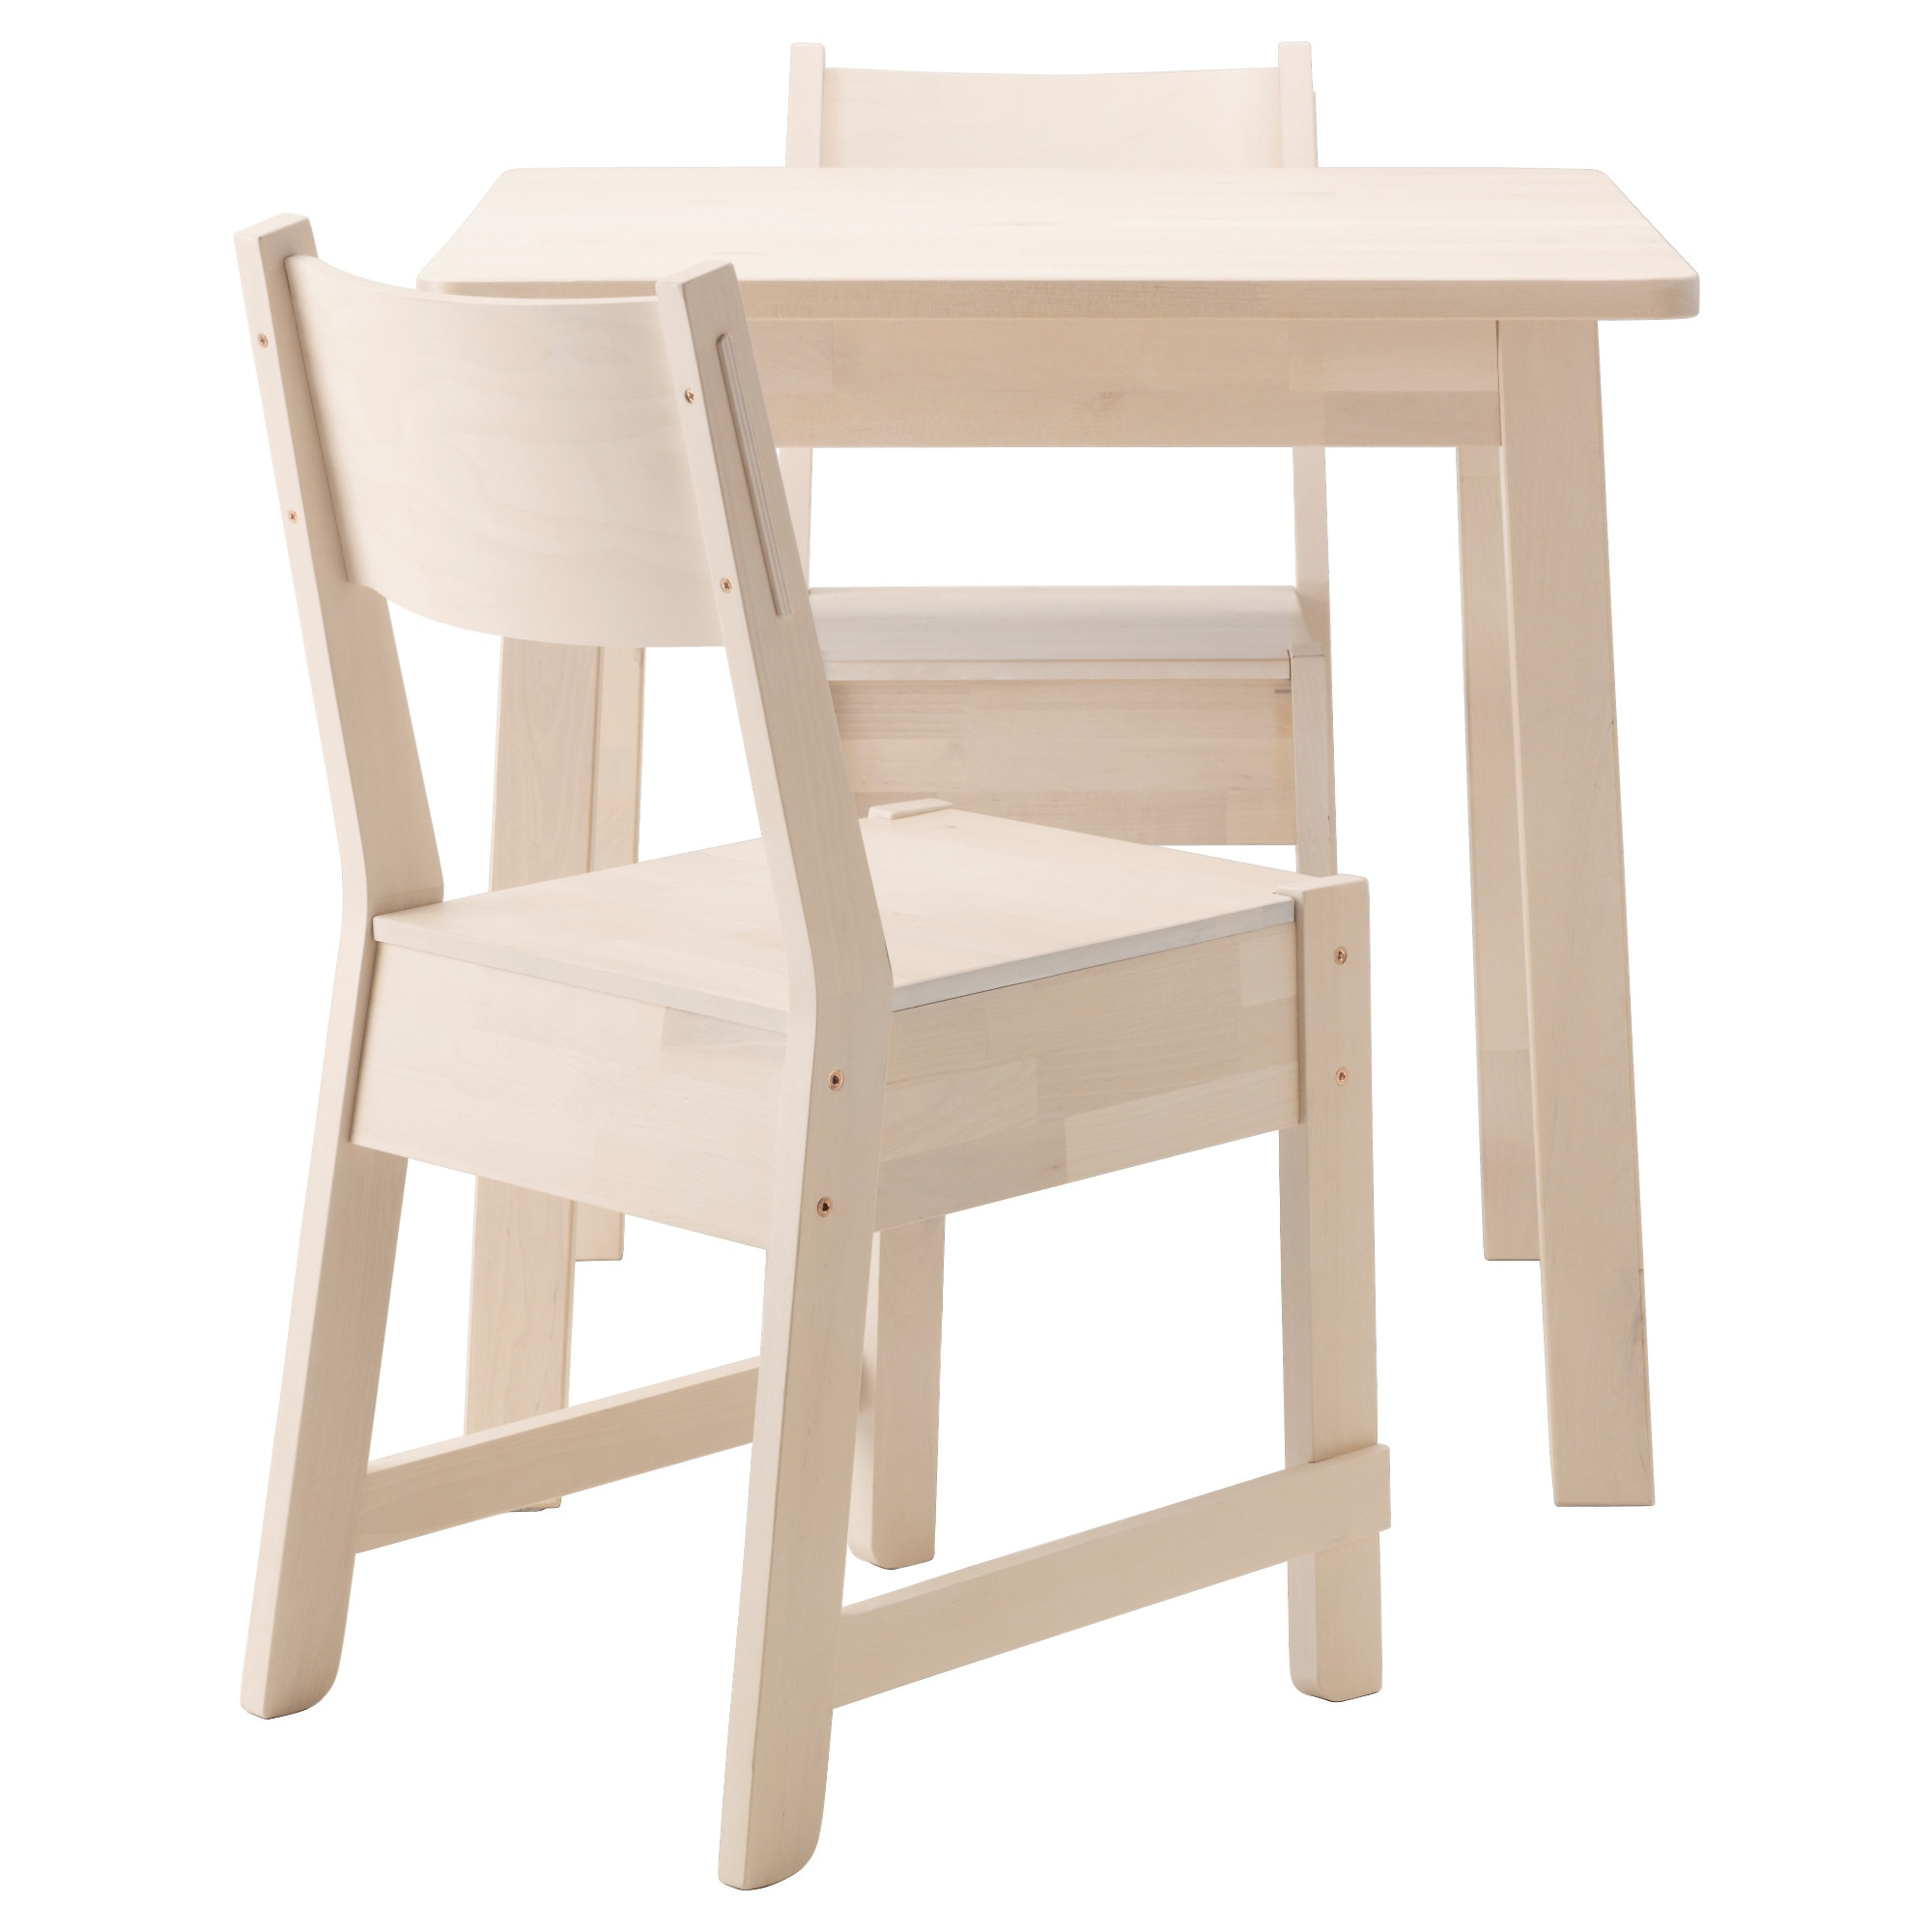 NORR…KER NORR…KER Table and 2 chairs IKEA